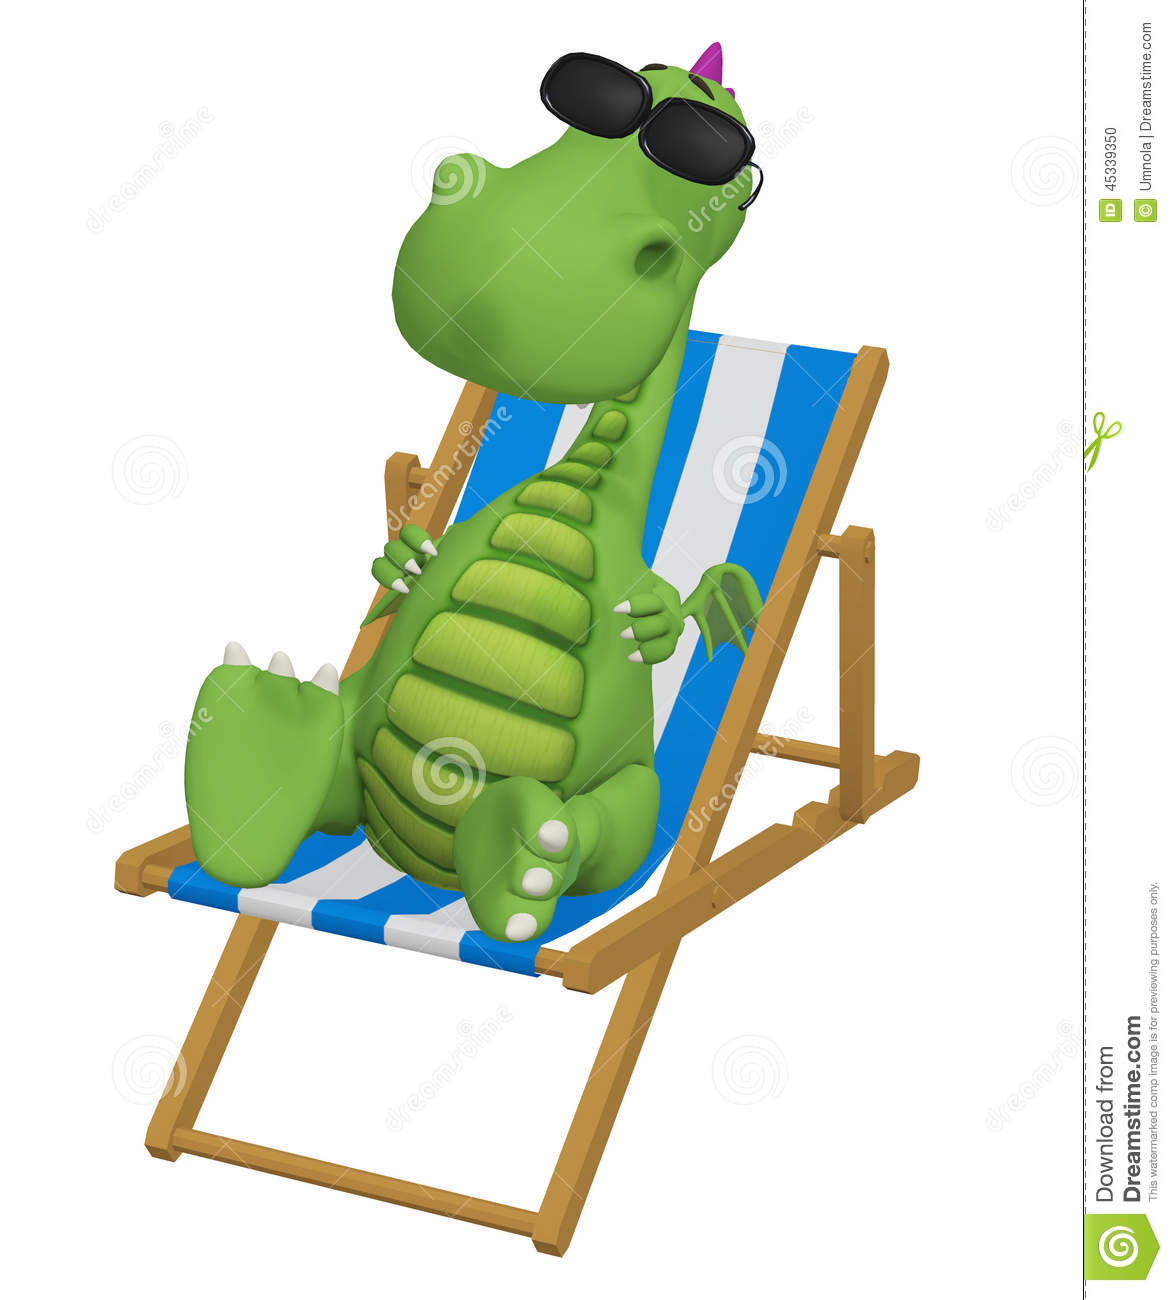 ... Relaxing In His Beach Chair Stock Illustration - Image: 45339350